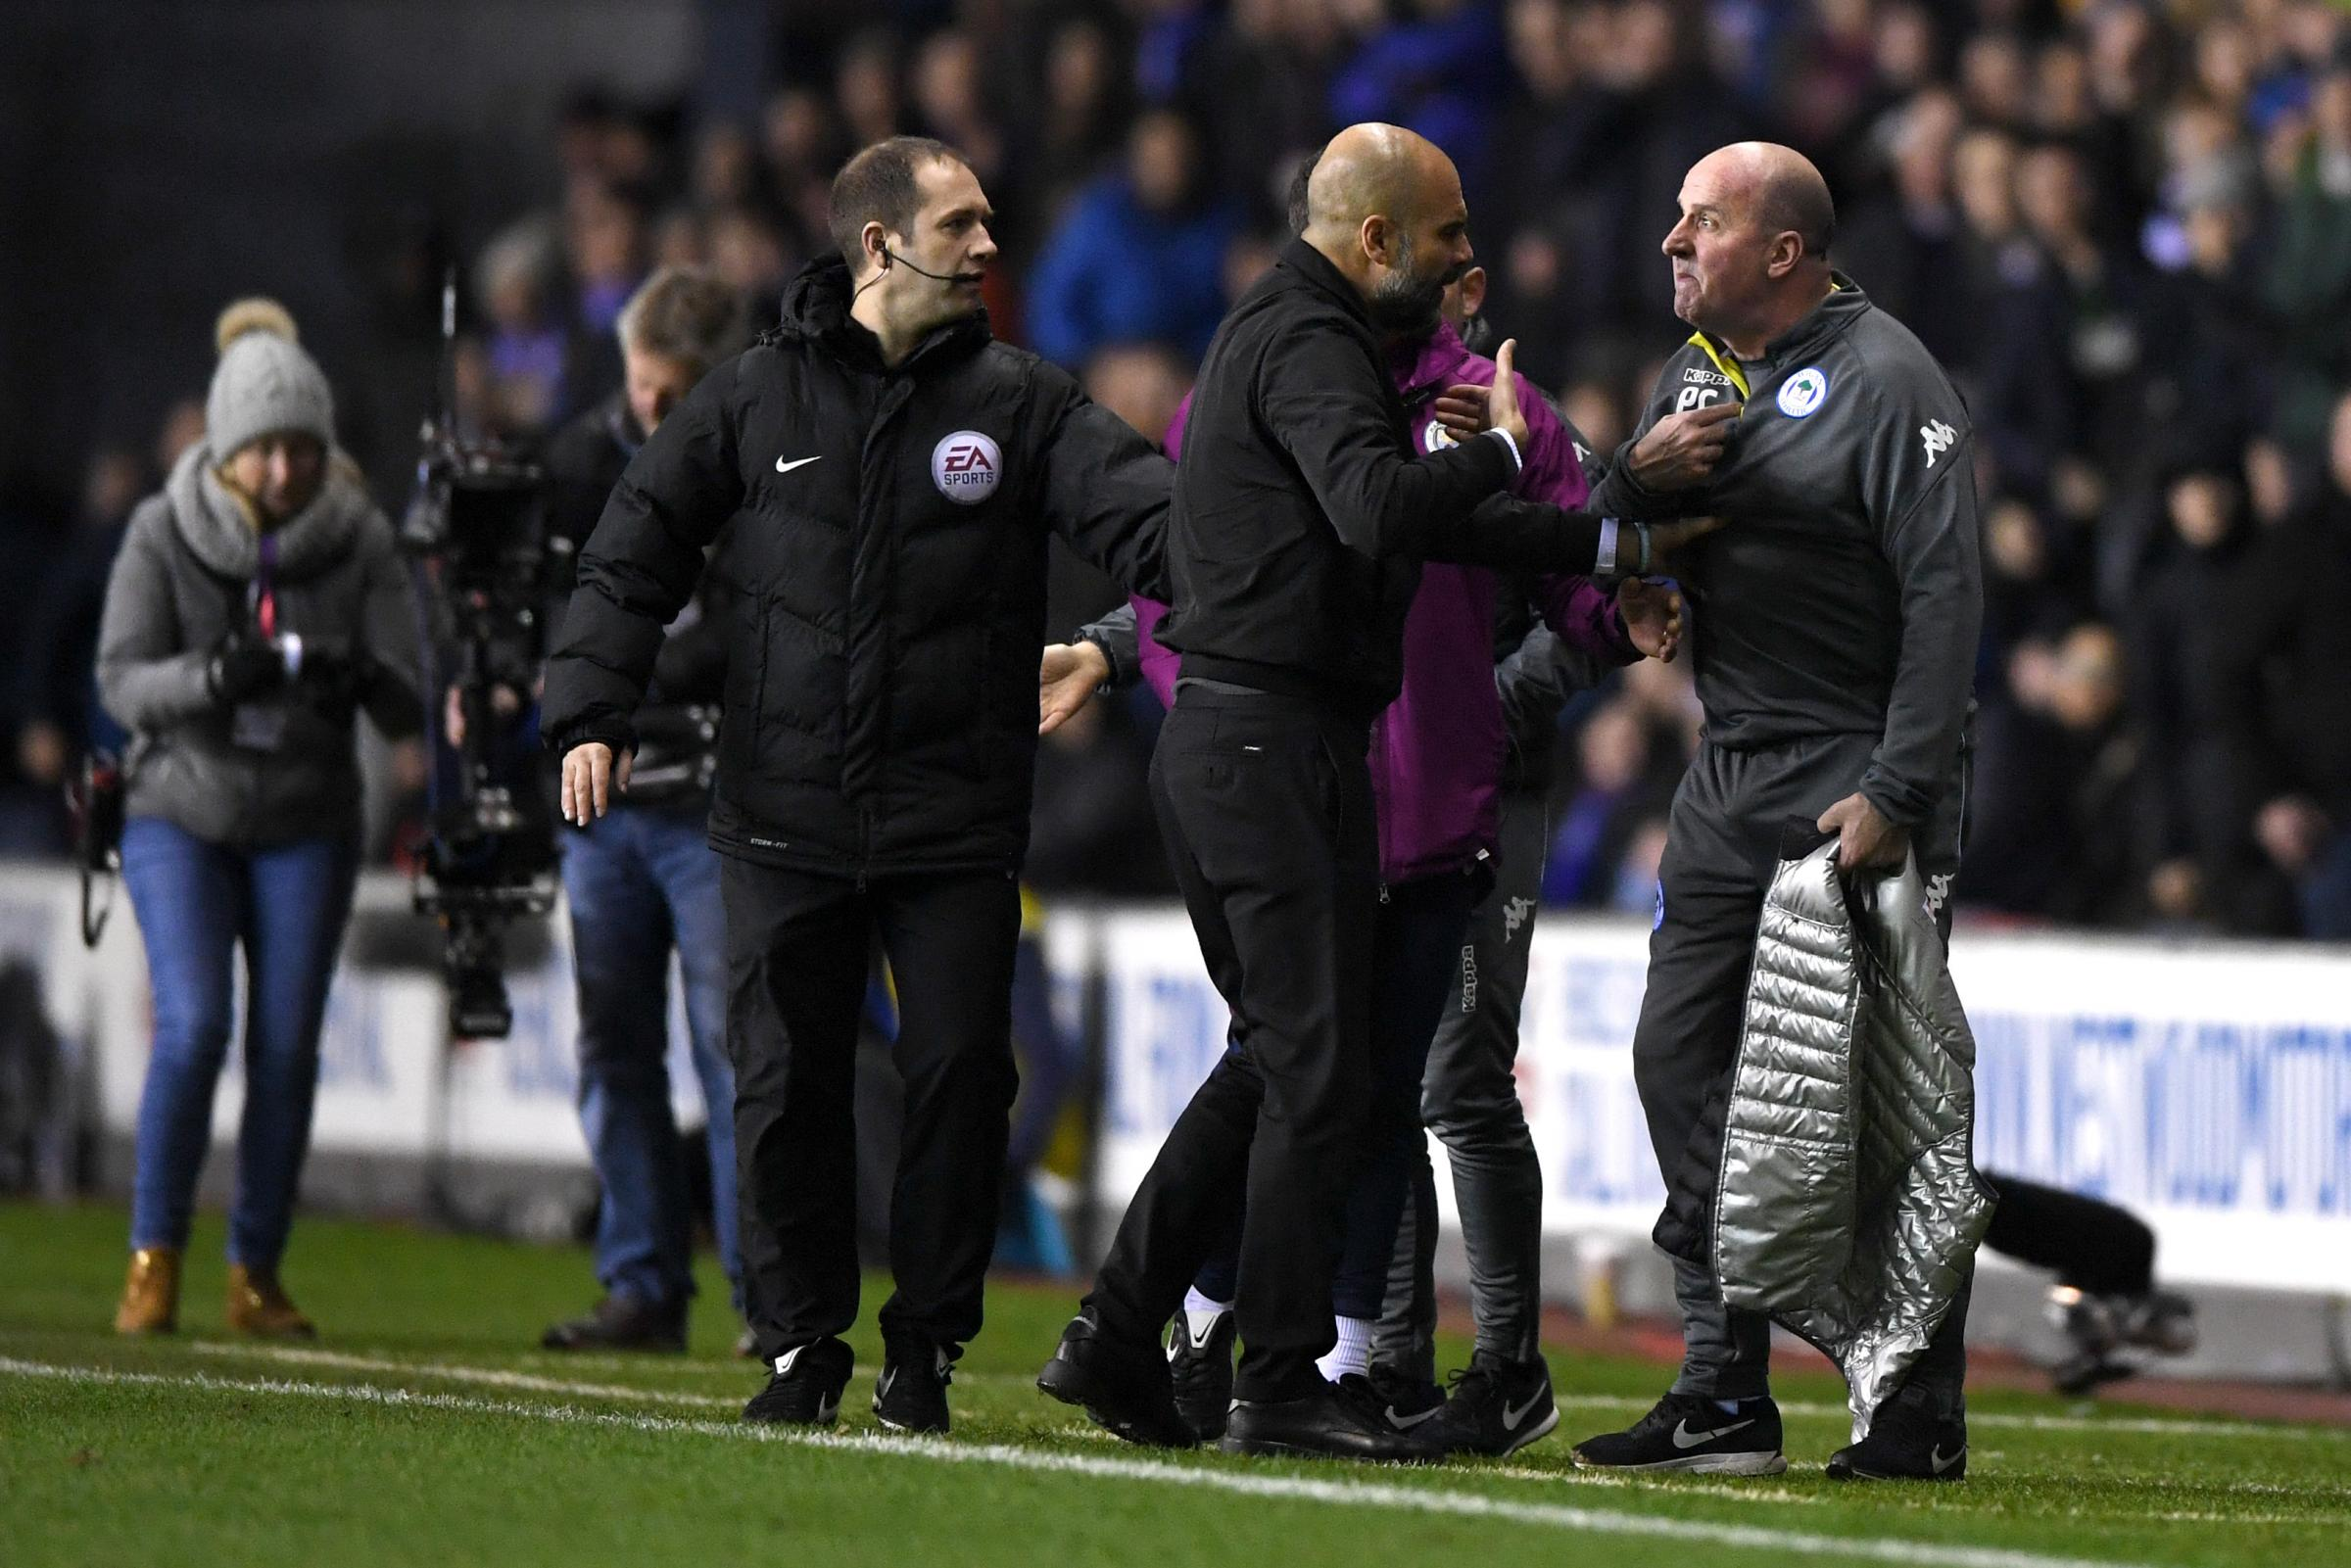 Pep Guardiola argues with Wigan manager Paul Cook during their FA Cup match last week    Photograph: Getty